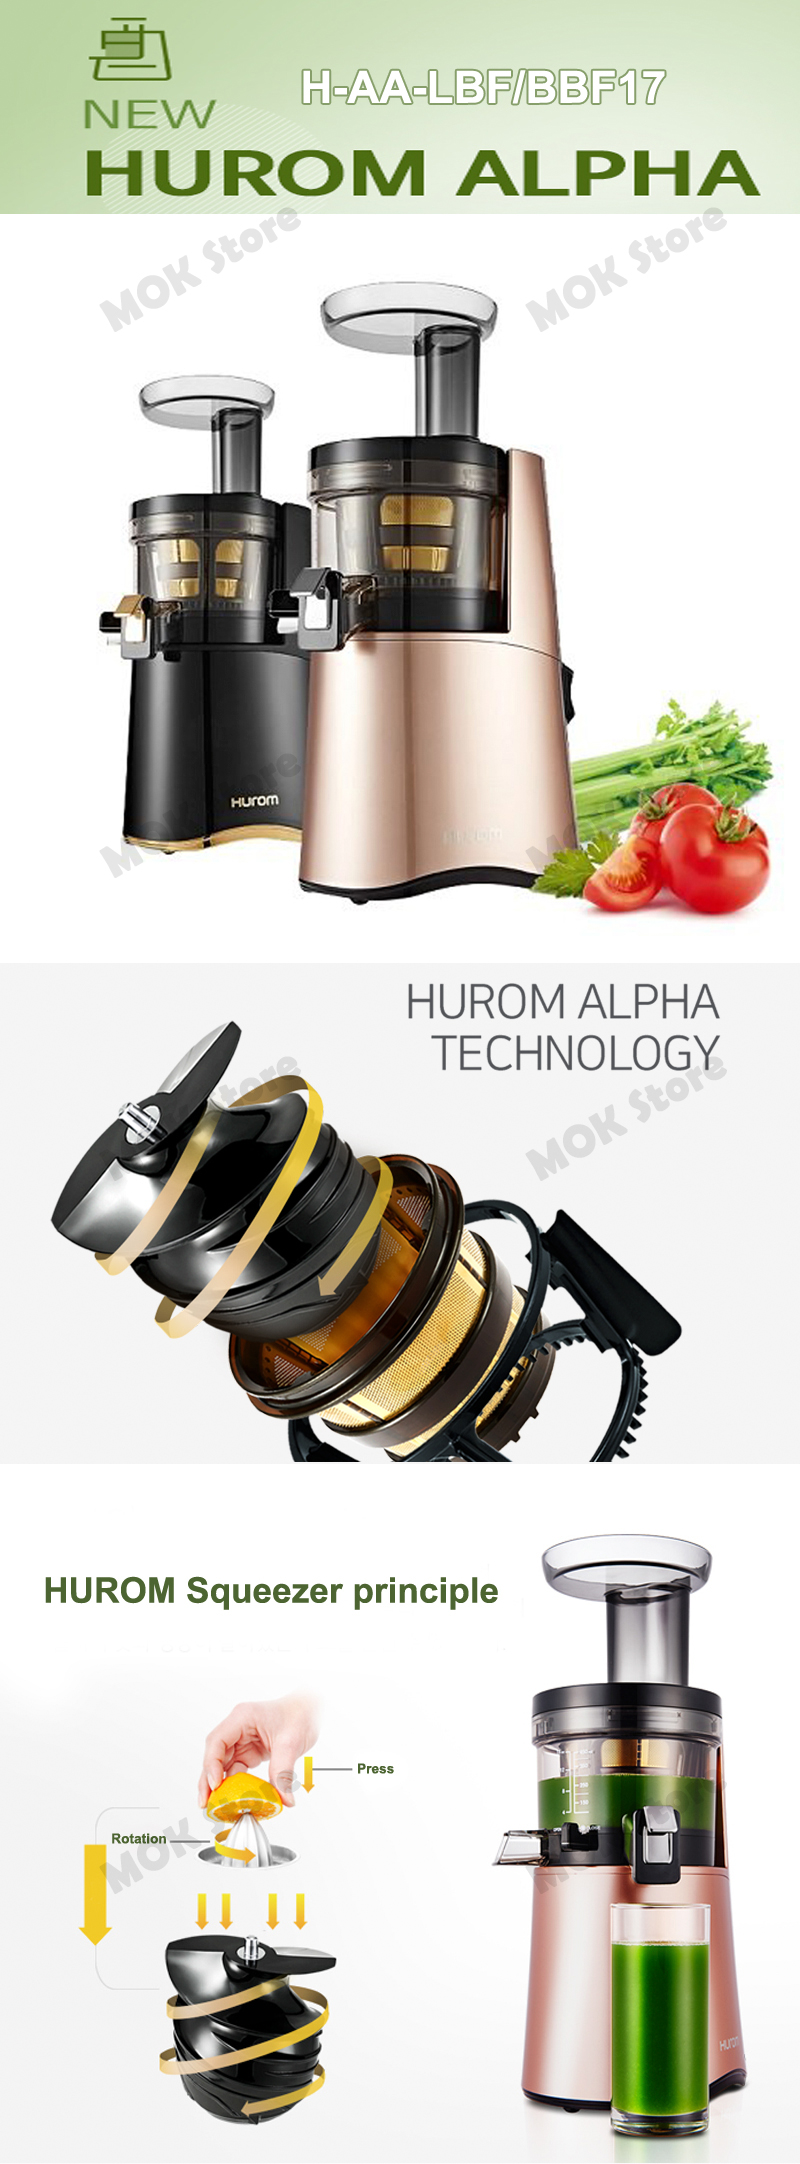 Hurom Alpha H AA LBF17 Premium Slow Cold Press Juicer Squeeze Extractor Black eBay